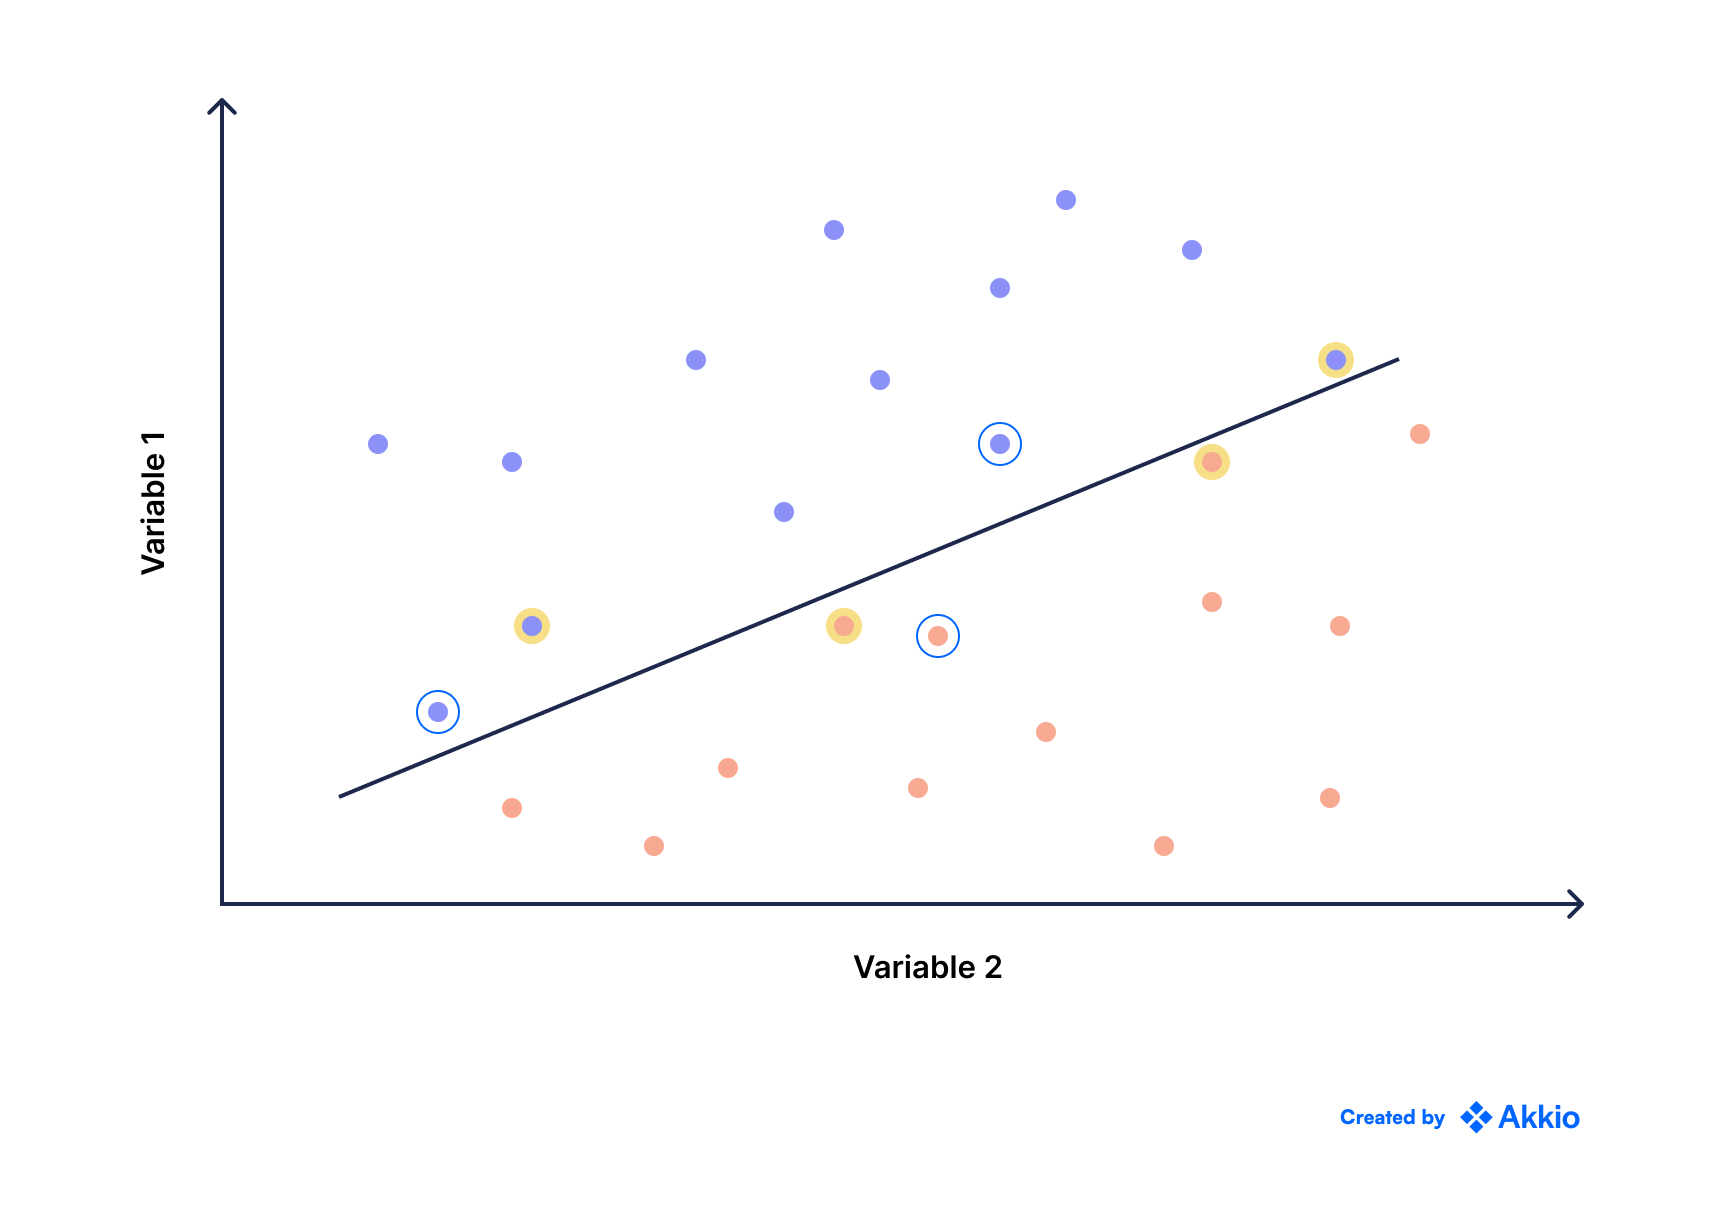 A scatter plot with different colored points and a line representing the relationship between two variables (on the x/y axis)